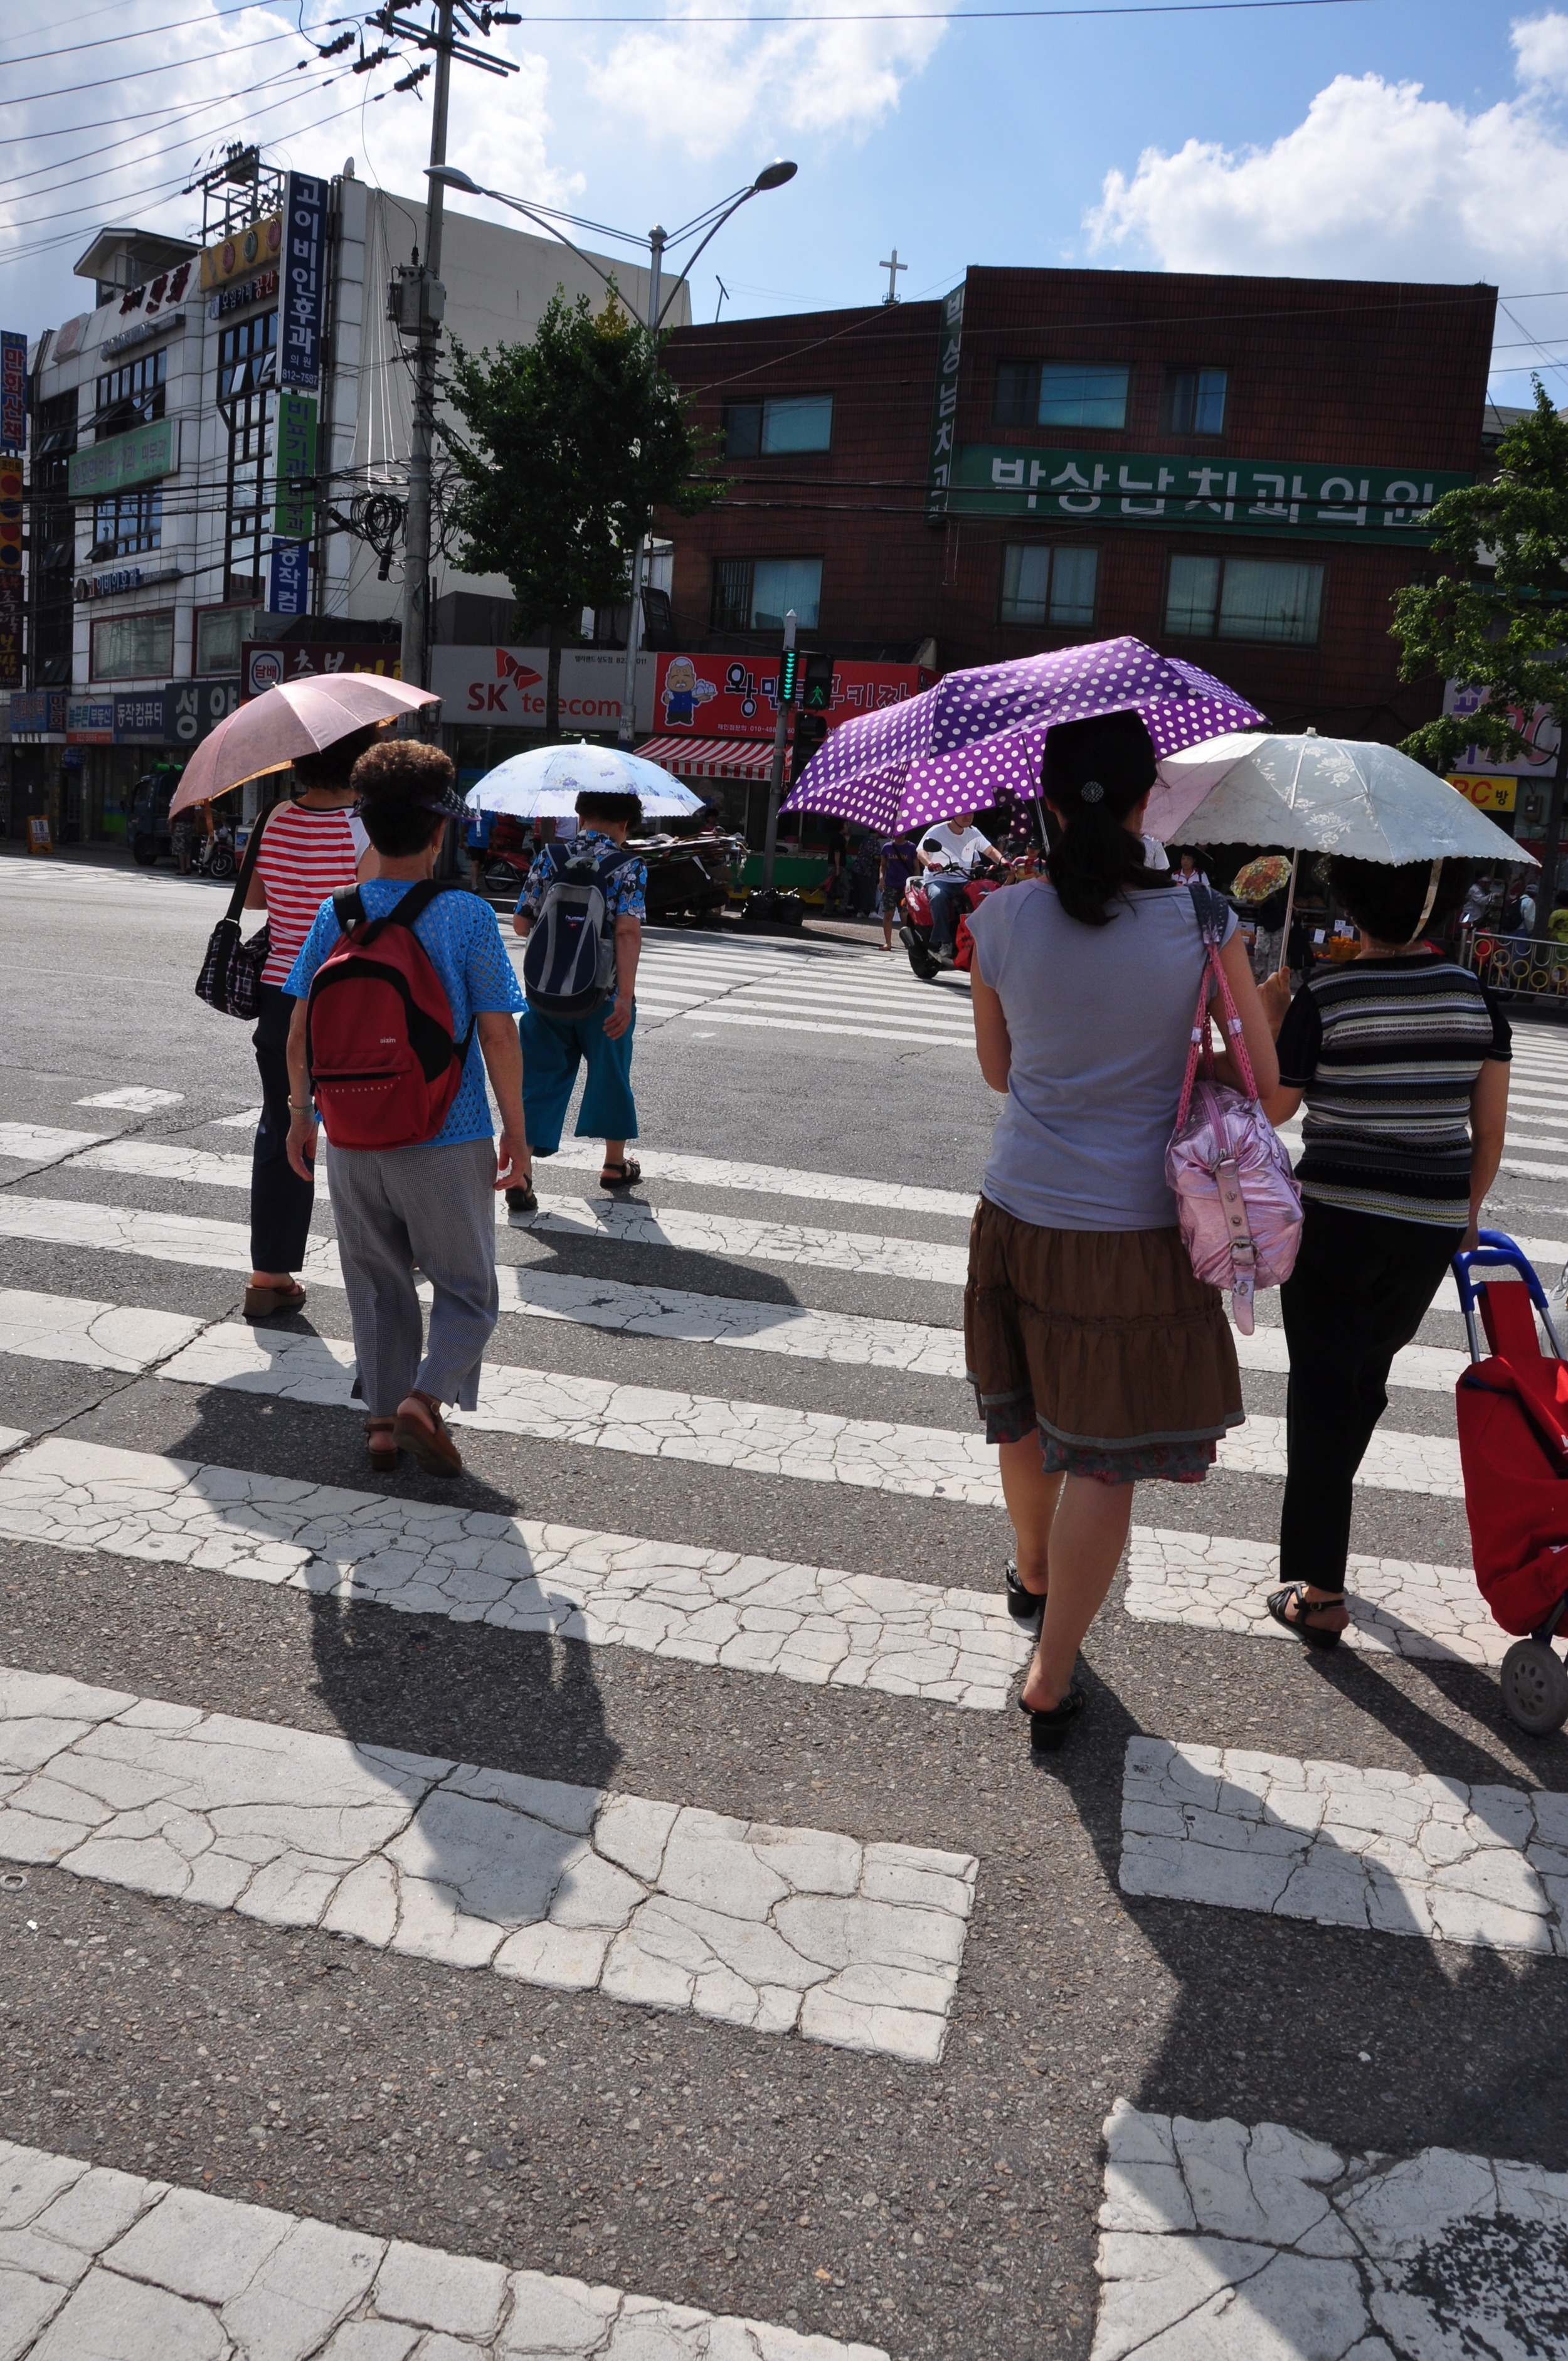 Unlike westerners, who generally enjoy suntanning, Koreans prefer to protect their skin from the sun.